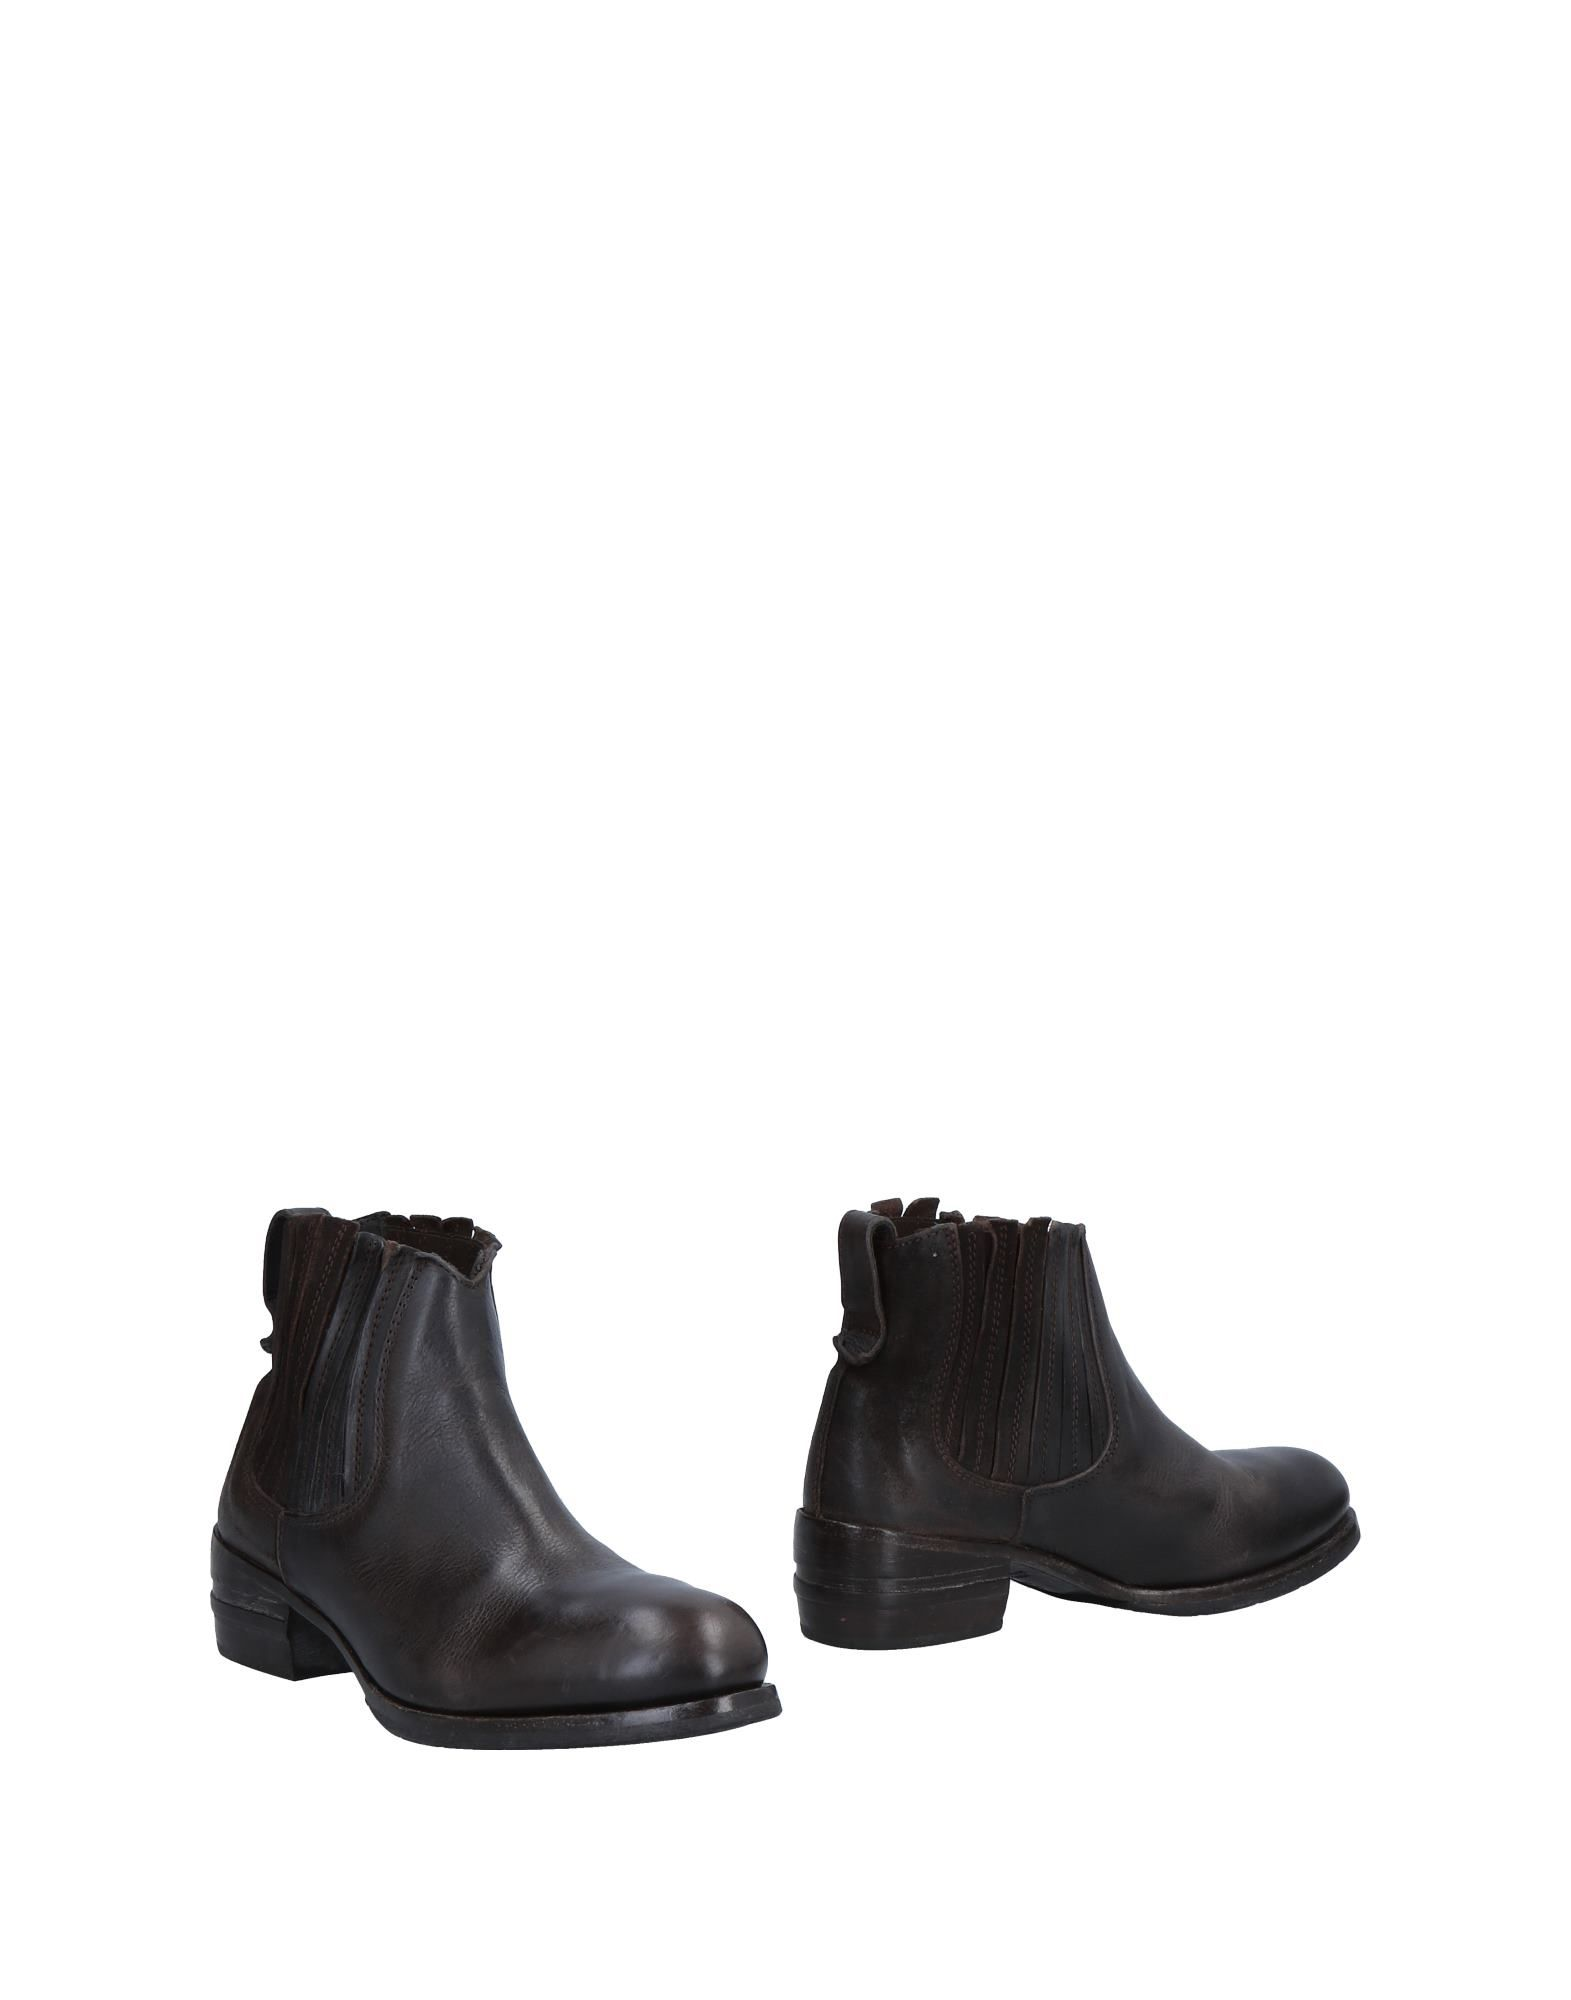 Moma Ankle Boot - Women Moma Ankle Boots online on YOOX Romania - 11498289IP